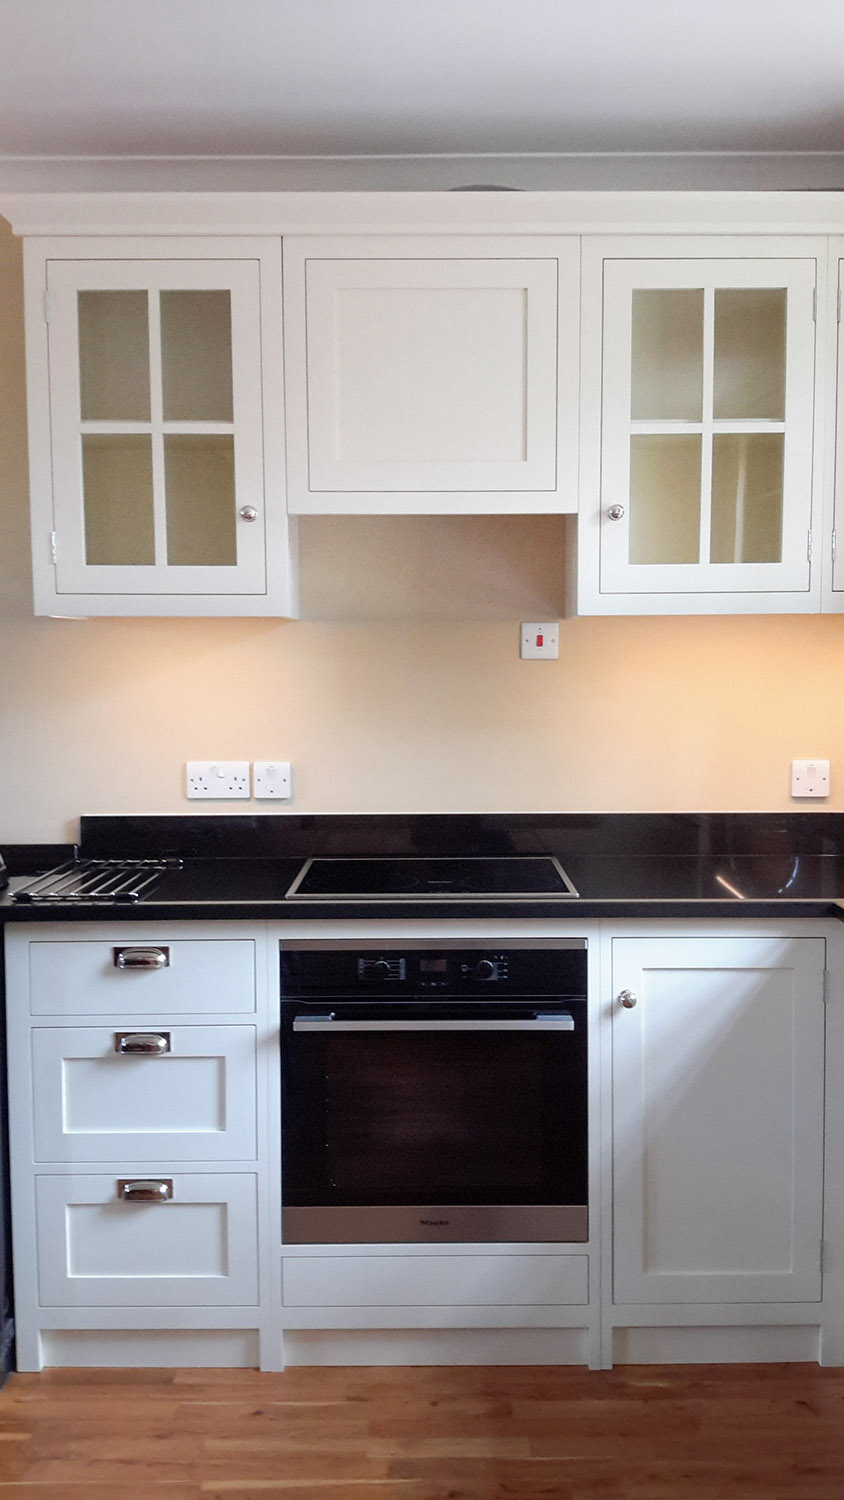 In Frame Kitchens From The Customers Perspective